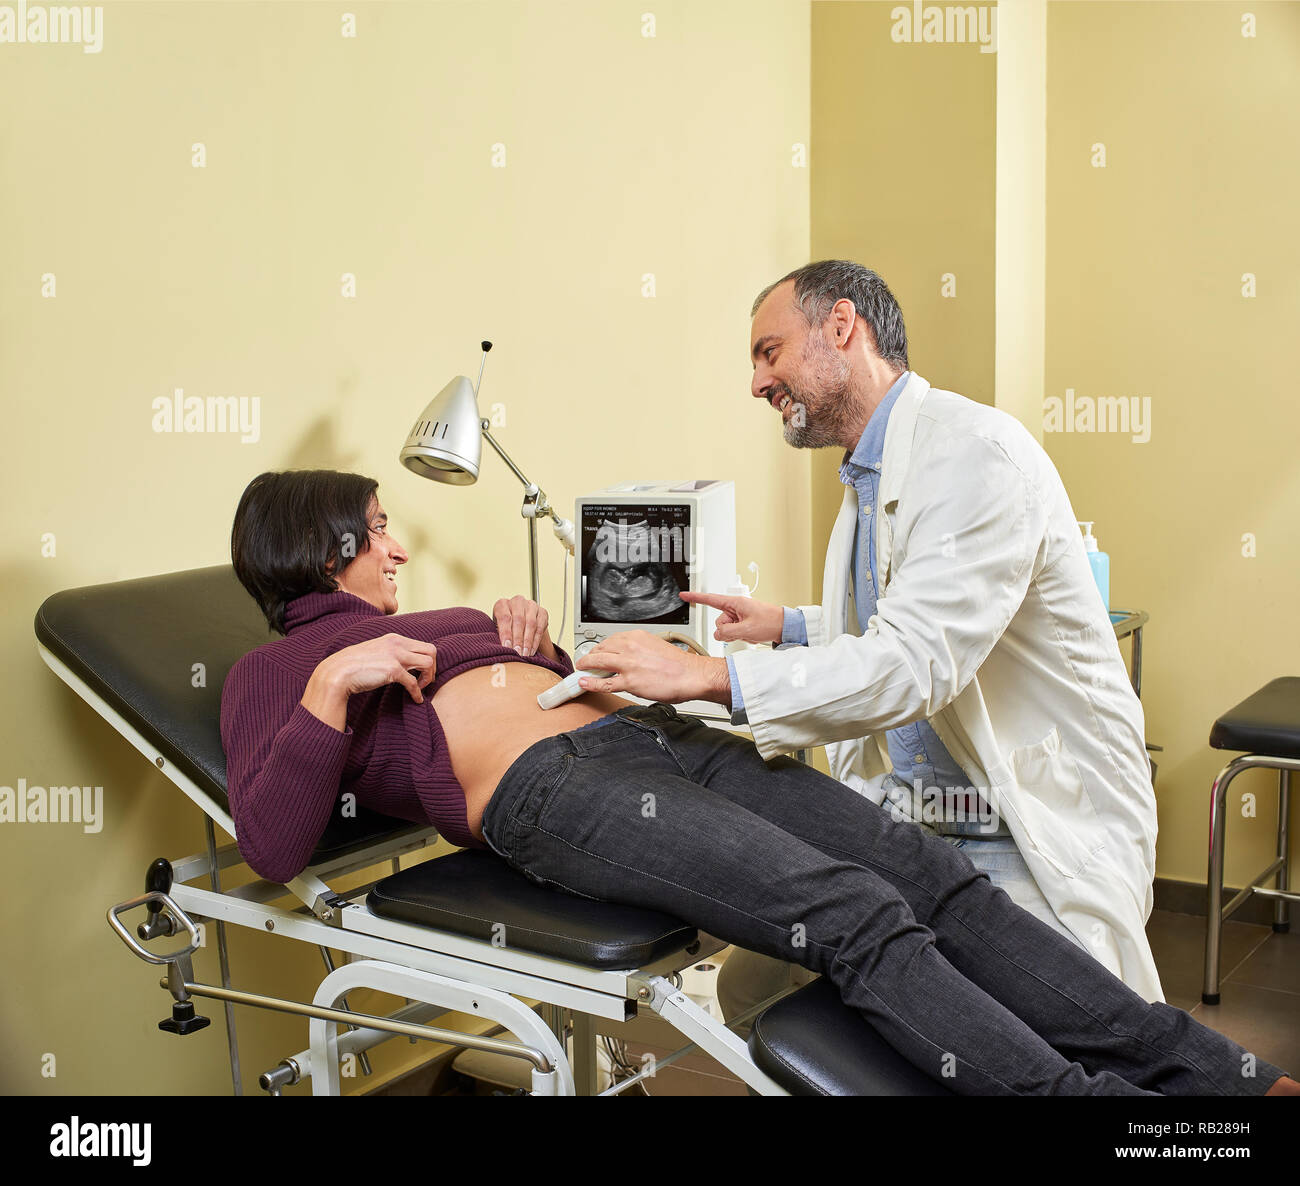 A smiling Gynecologist doing an ultrasound scan procedure on a happy fortyish Hispanic pregnant woman with a medical ultrasound scanner. - Stock Image